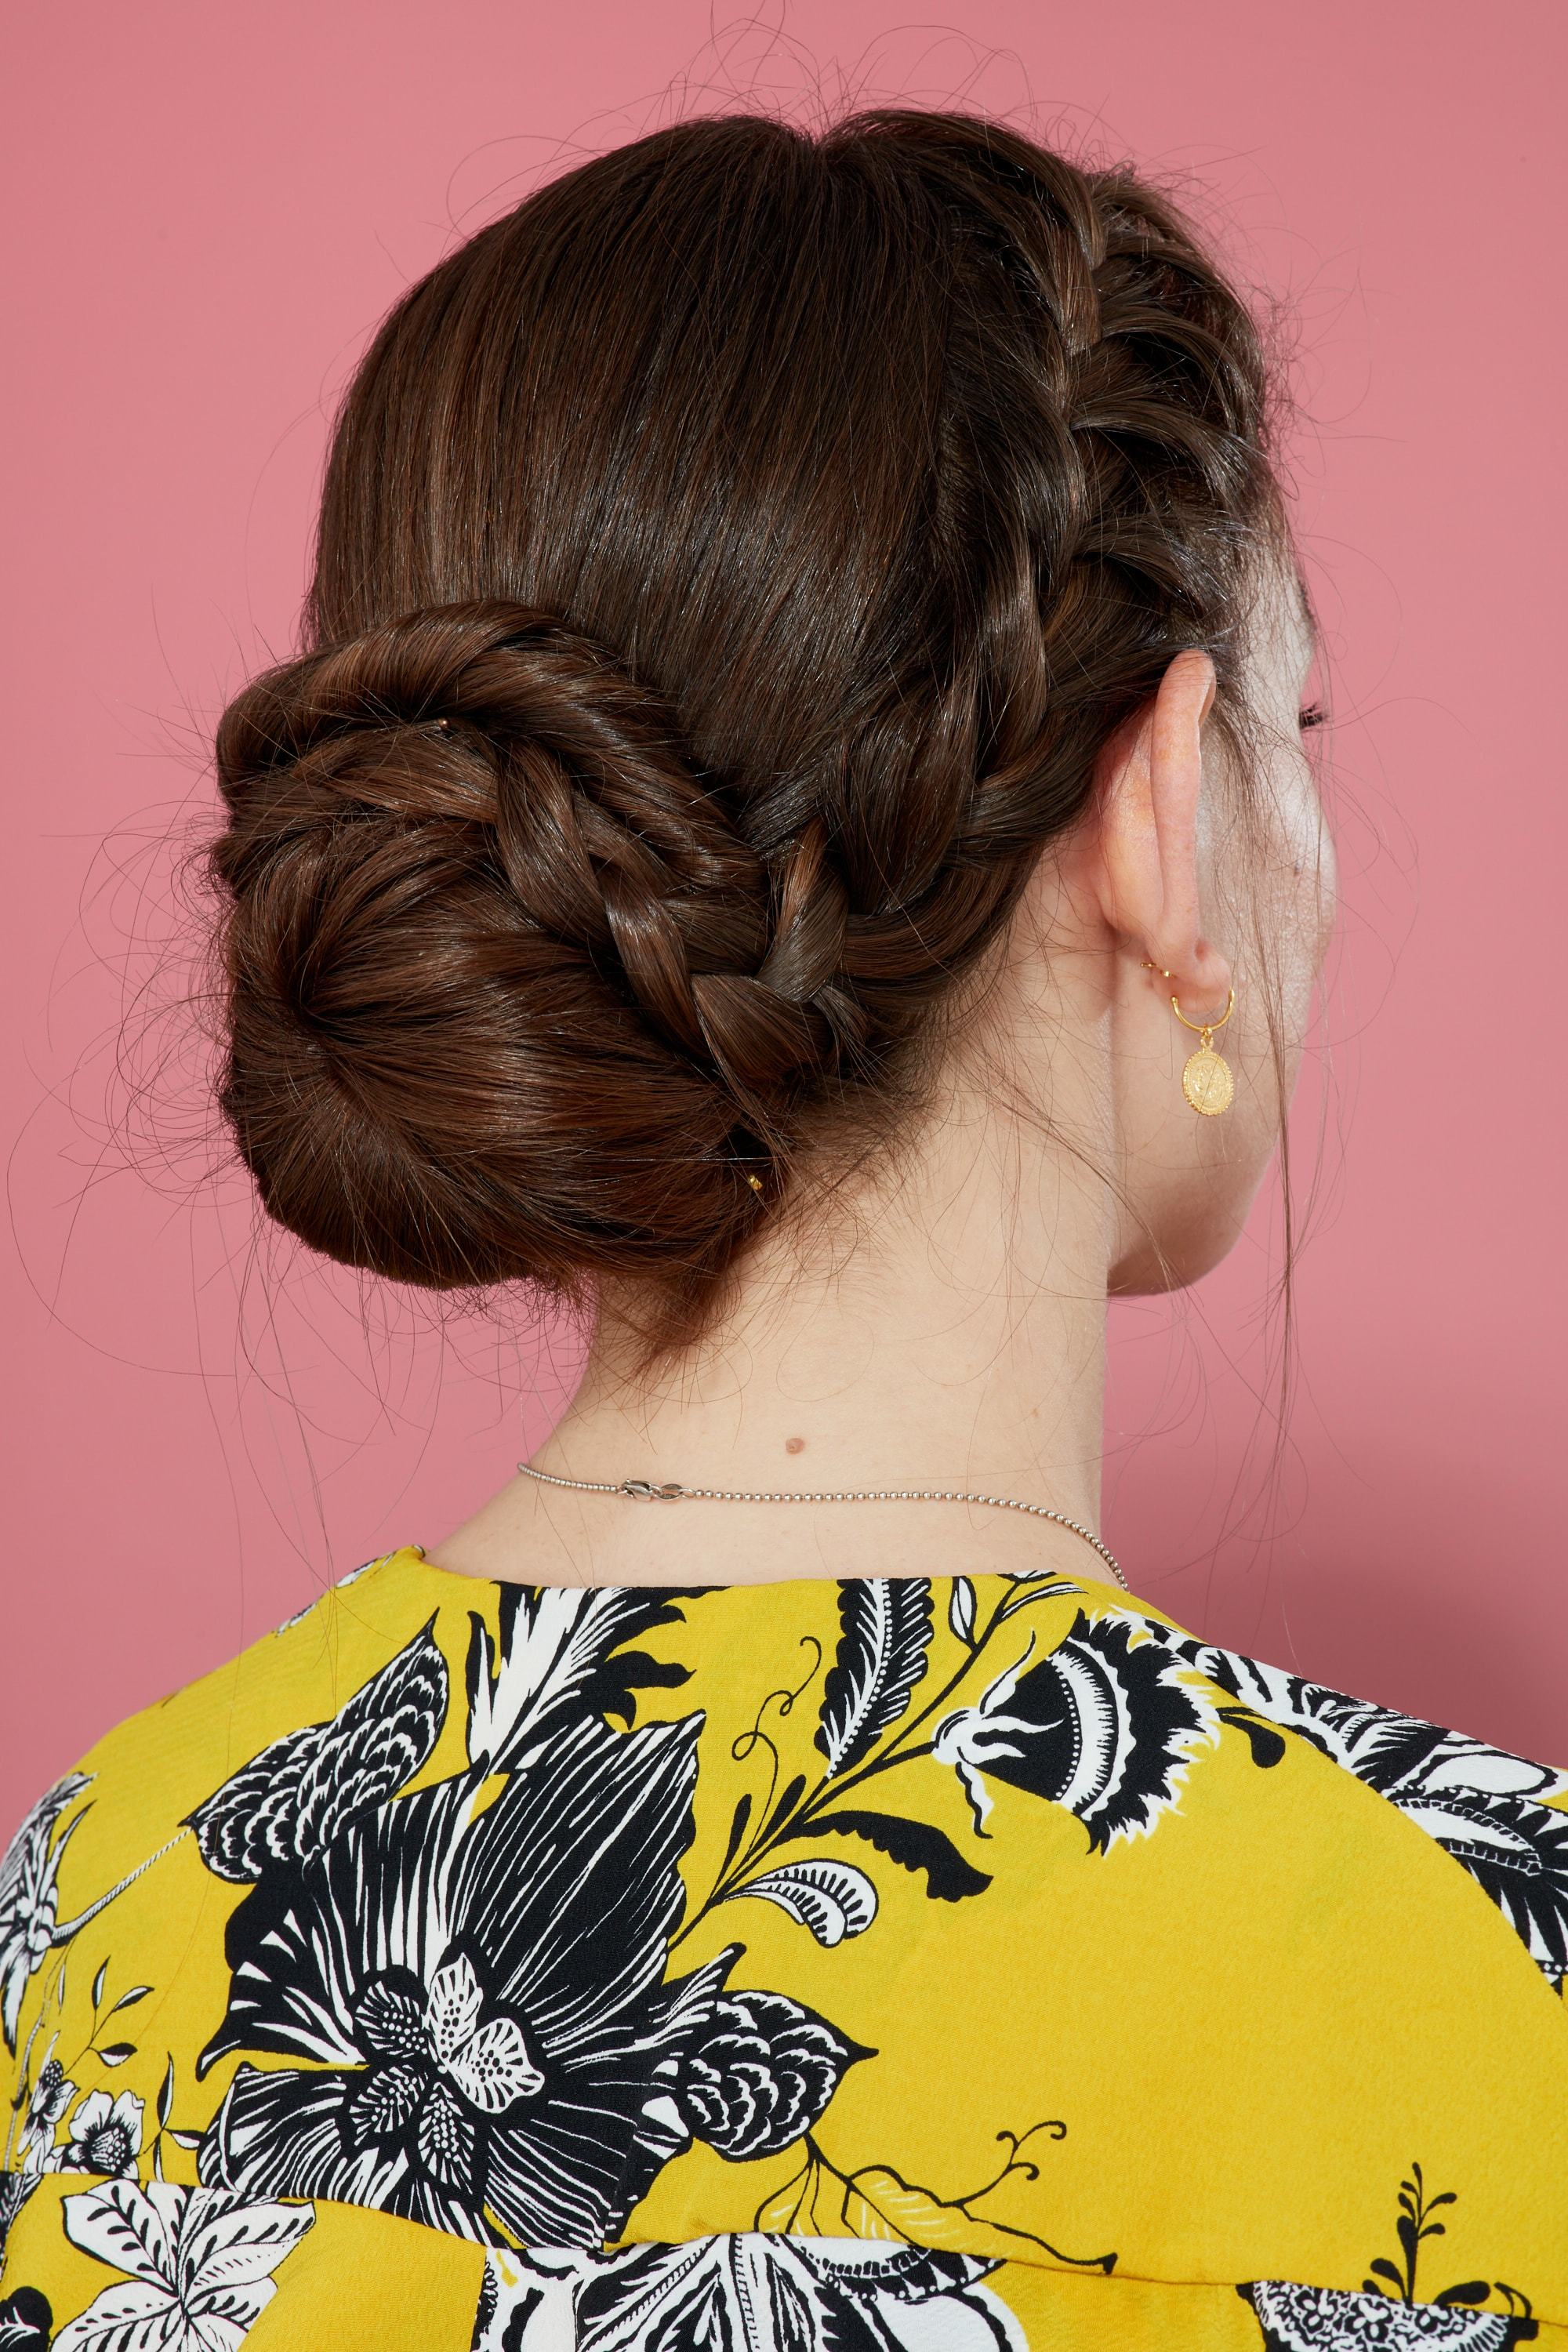 Braids for long hair: Woman with long brown hair in french braided bun wearing yellow pattern top against a pink backdrop.